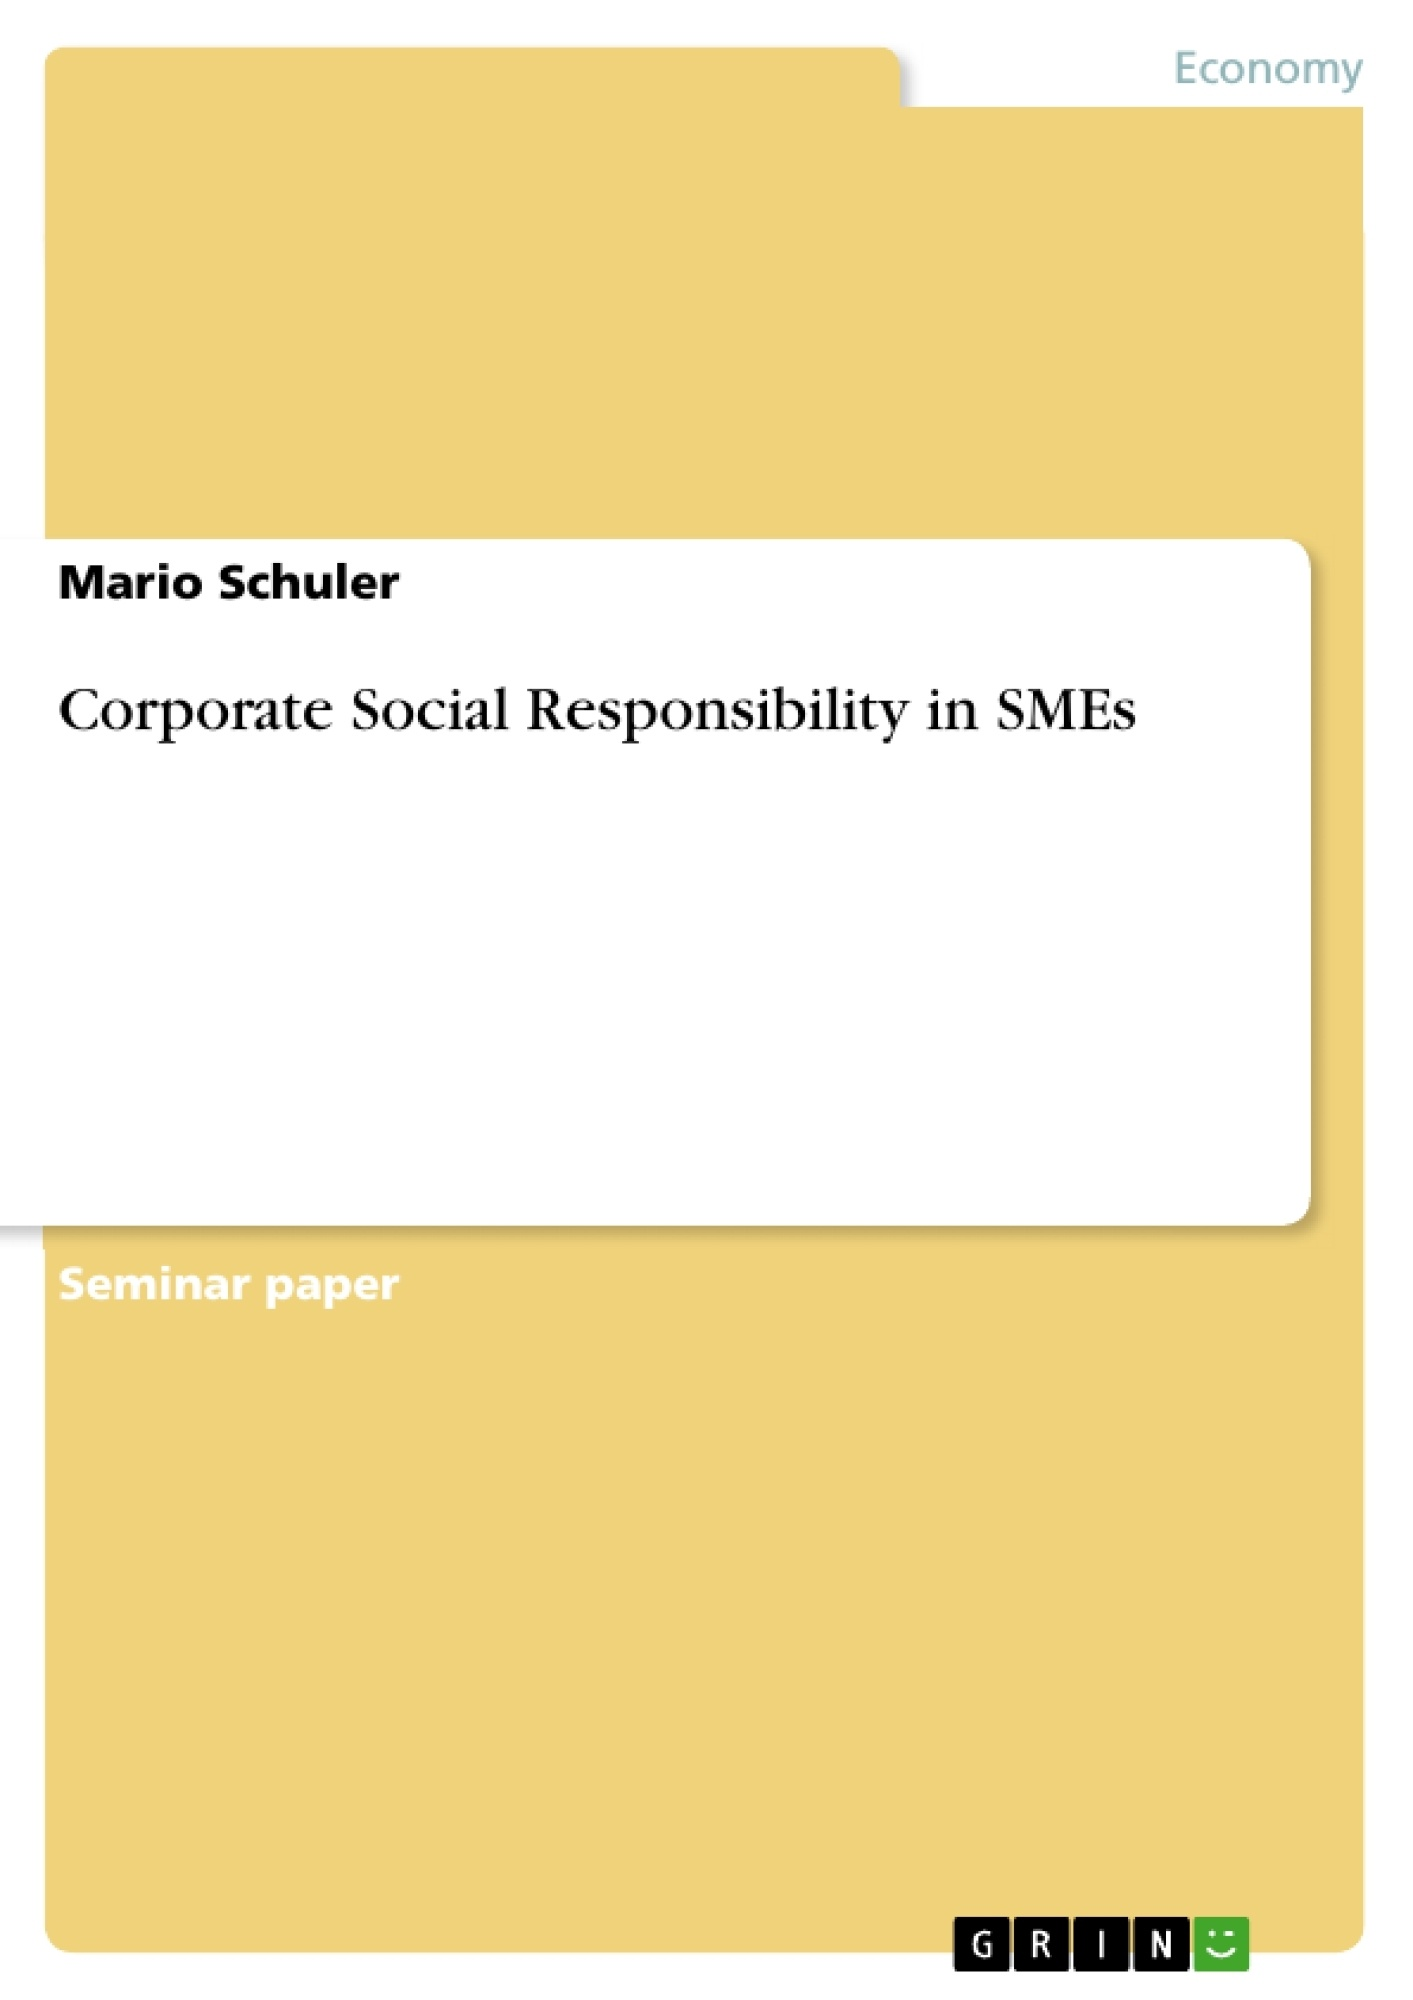 Title: Corporate Social Responsibility in SMEs